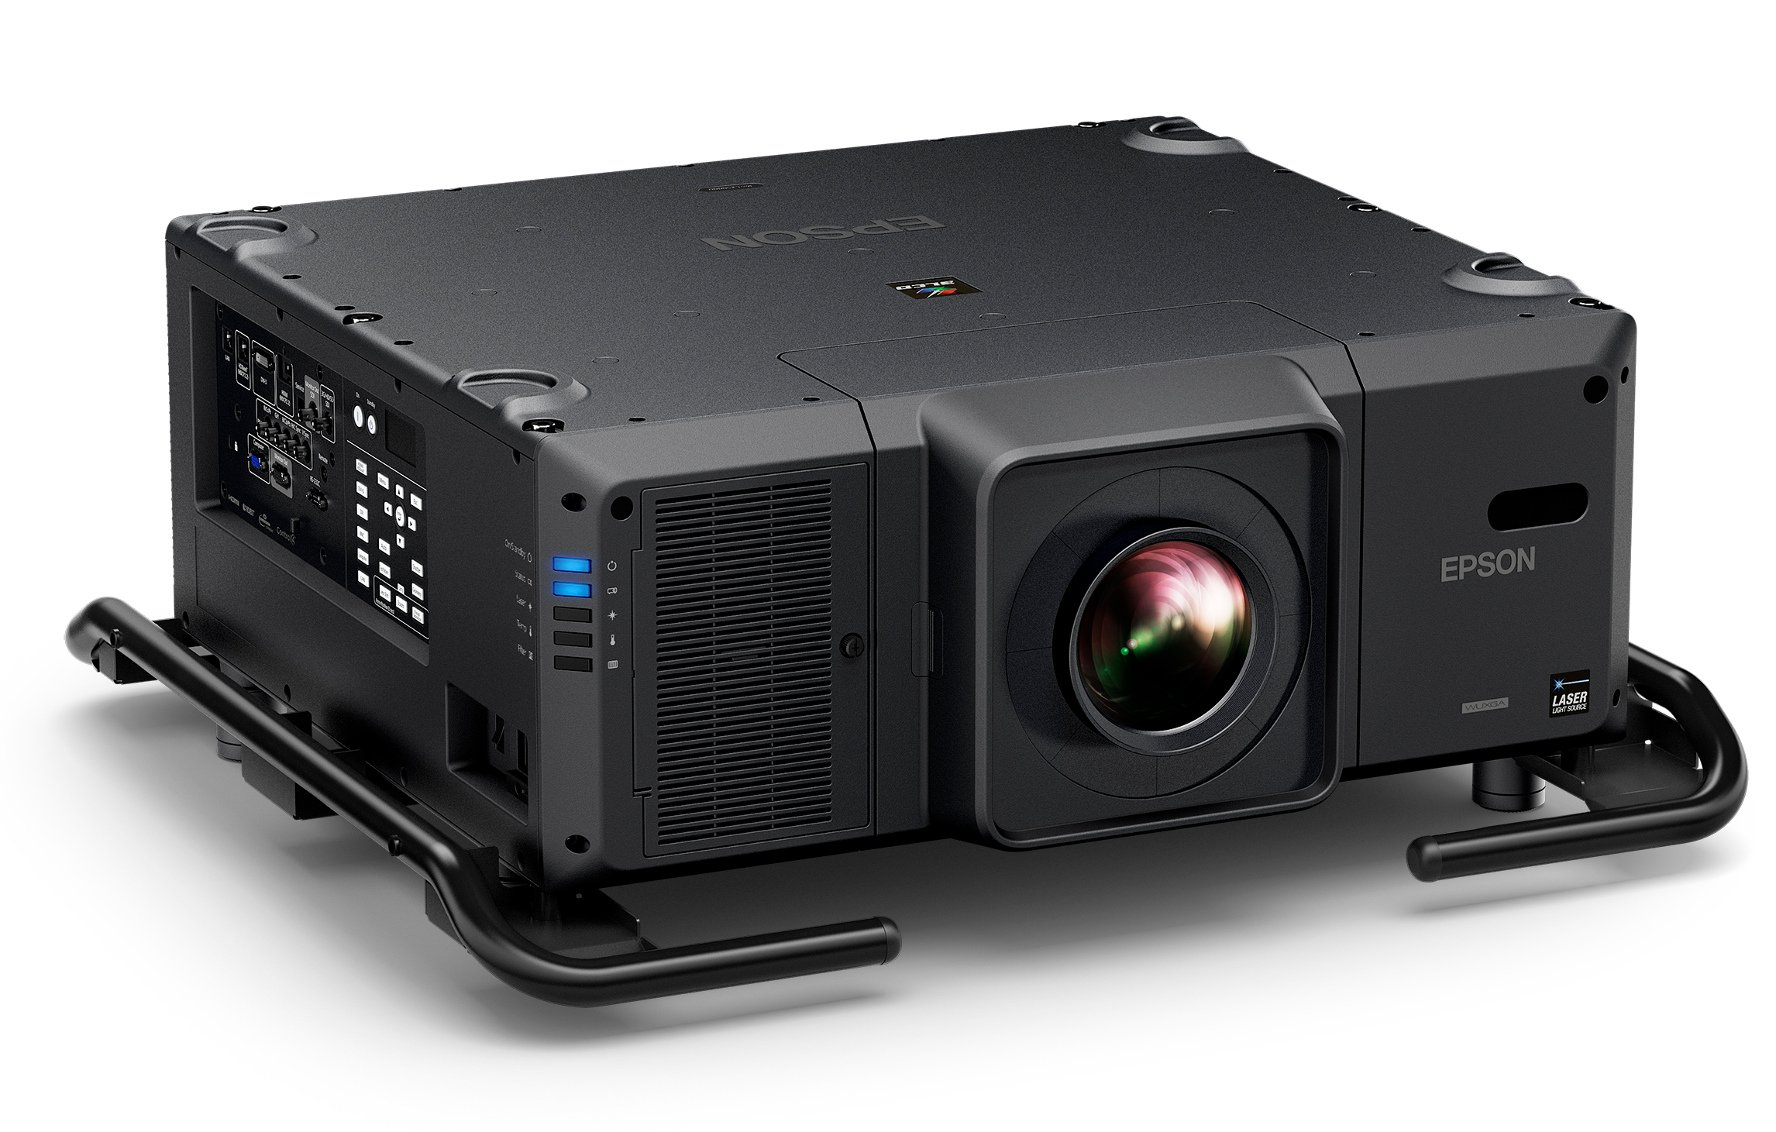 25000 Lumen WUXGA 3LCD Laser Projector with 4K Enhancement - Body Only